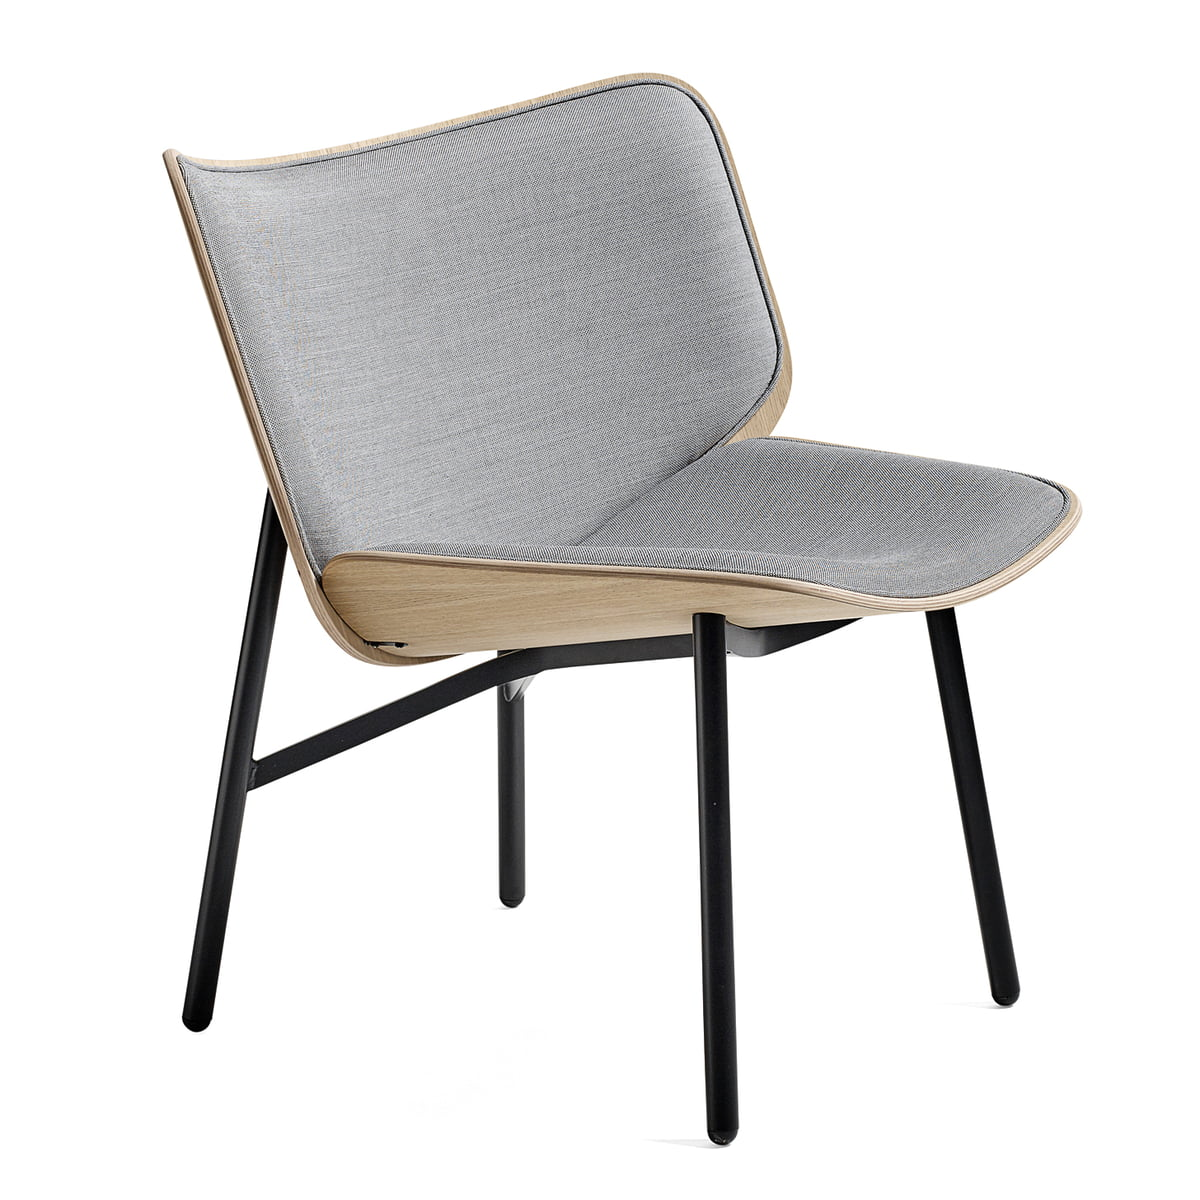 Hay Lounge Stoel.Dapper Lounge Chair By Hay Connox